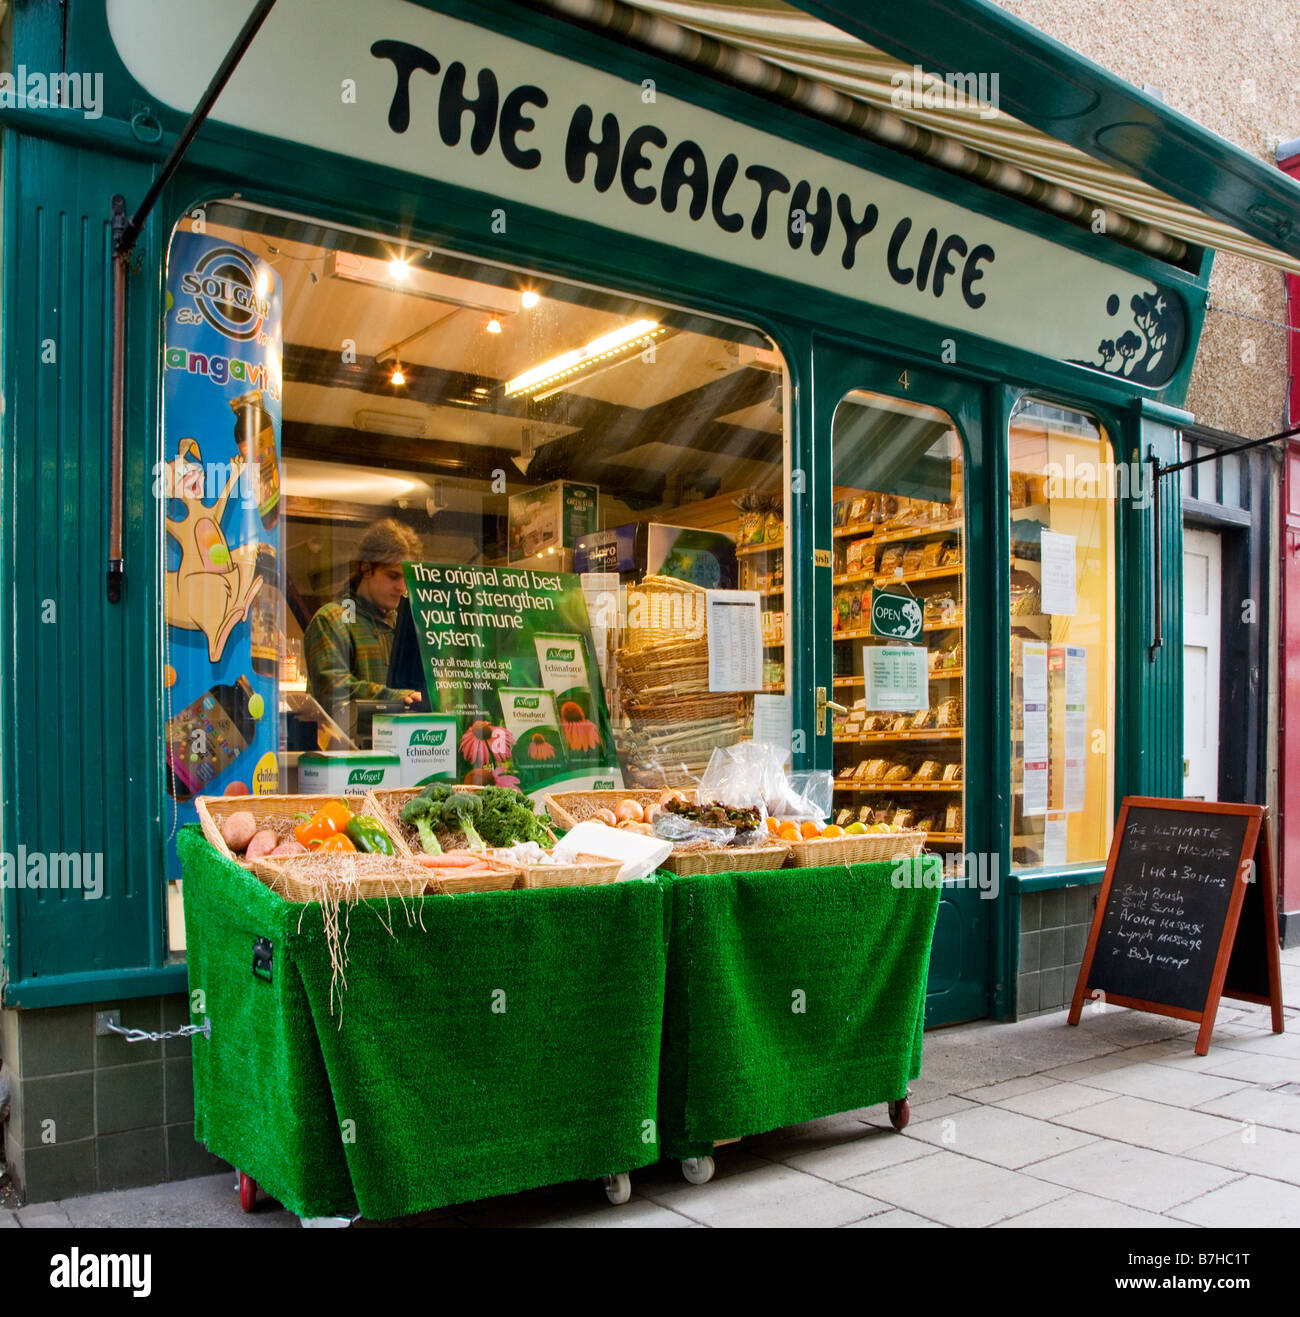 Health Food Shop Uk Stock Photos Health Food Shop Uk Stock regarding health food shop intended for your reference